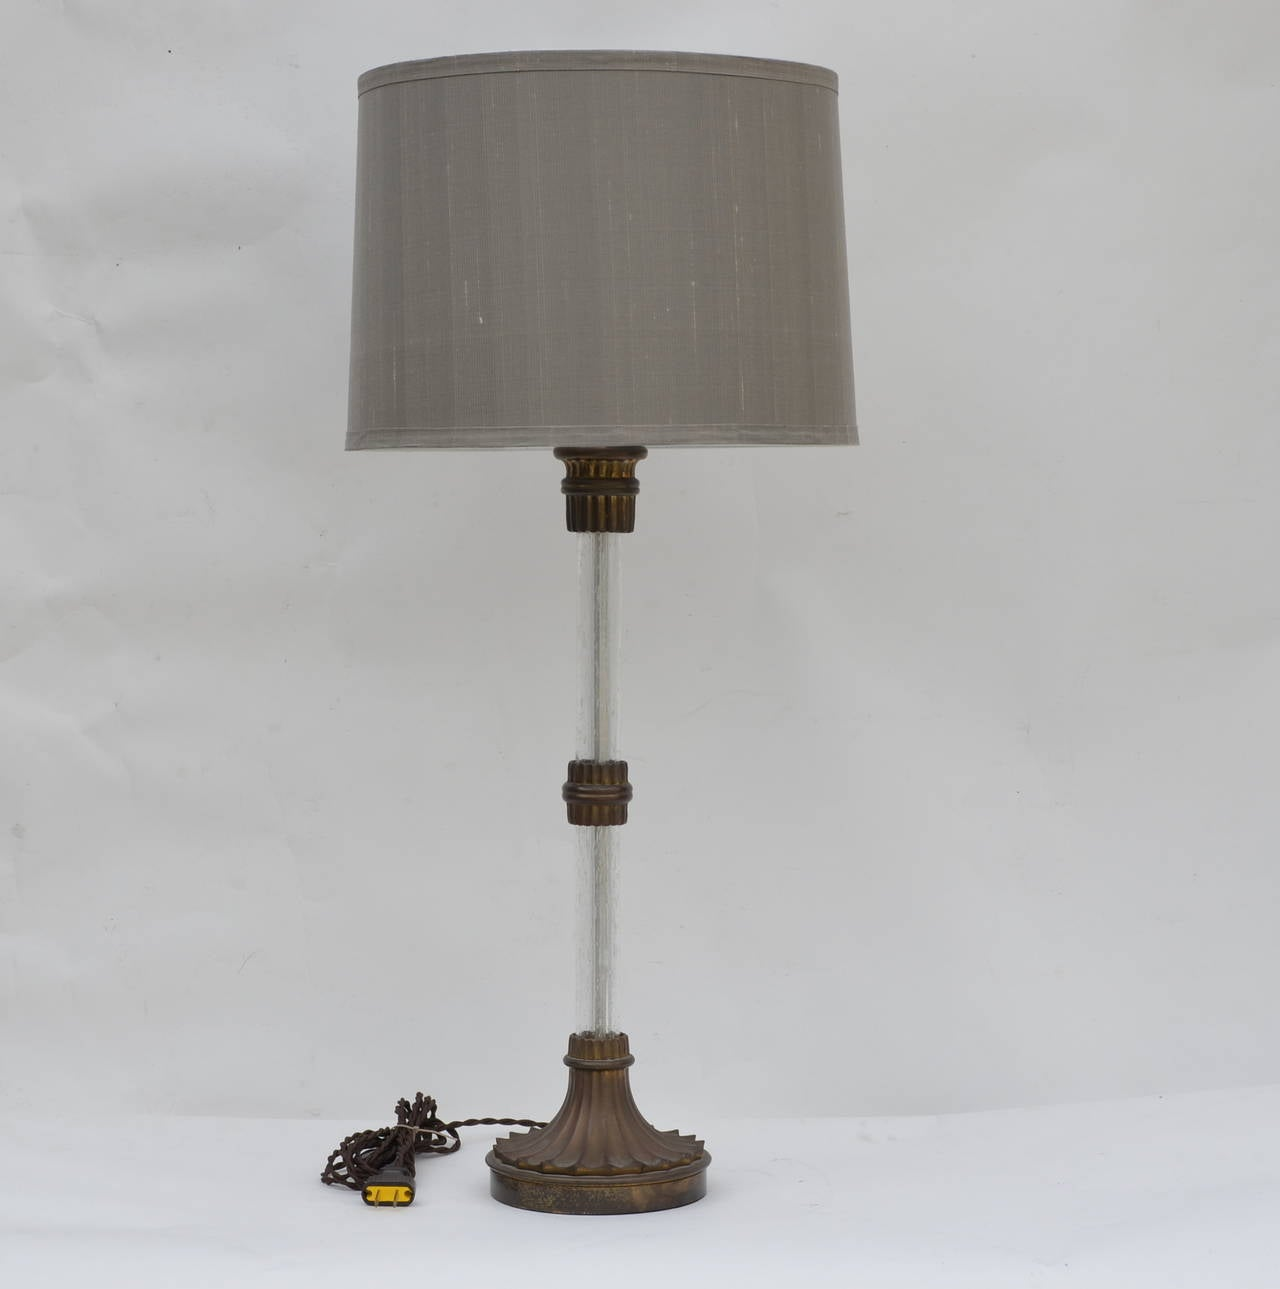 Pottery barn clift glass lamp ebay - Heavy Glass Table Lamps